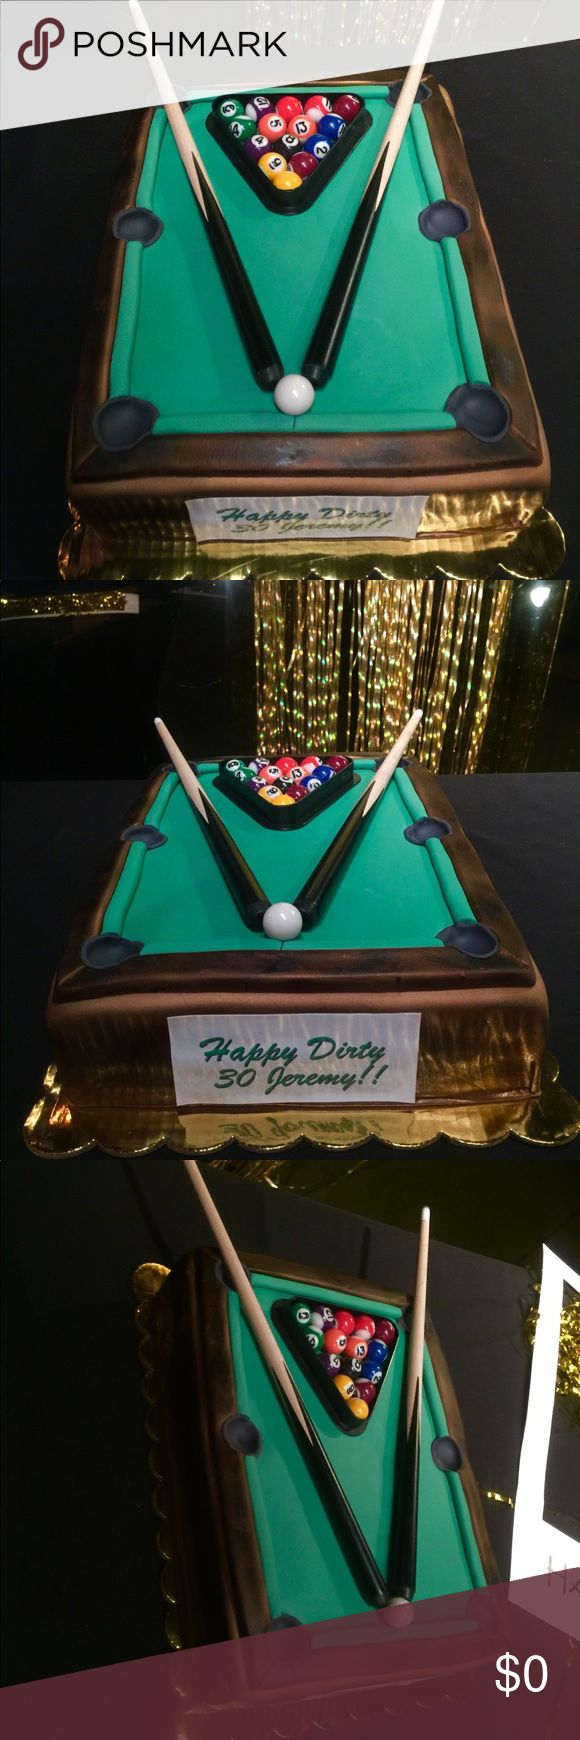 Pool table cake Pool Table Cake Other